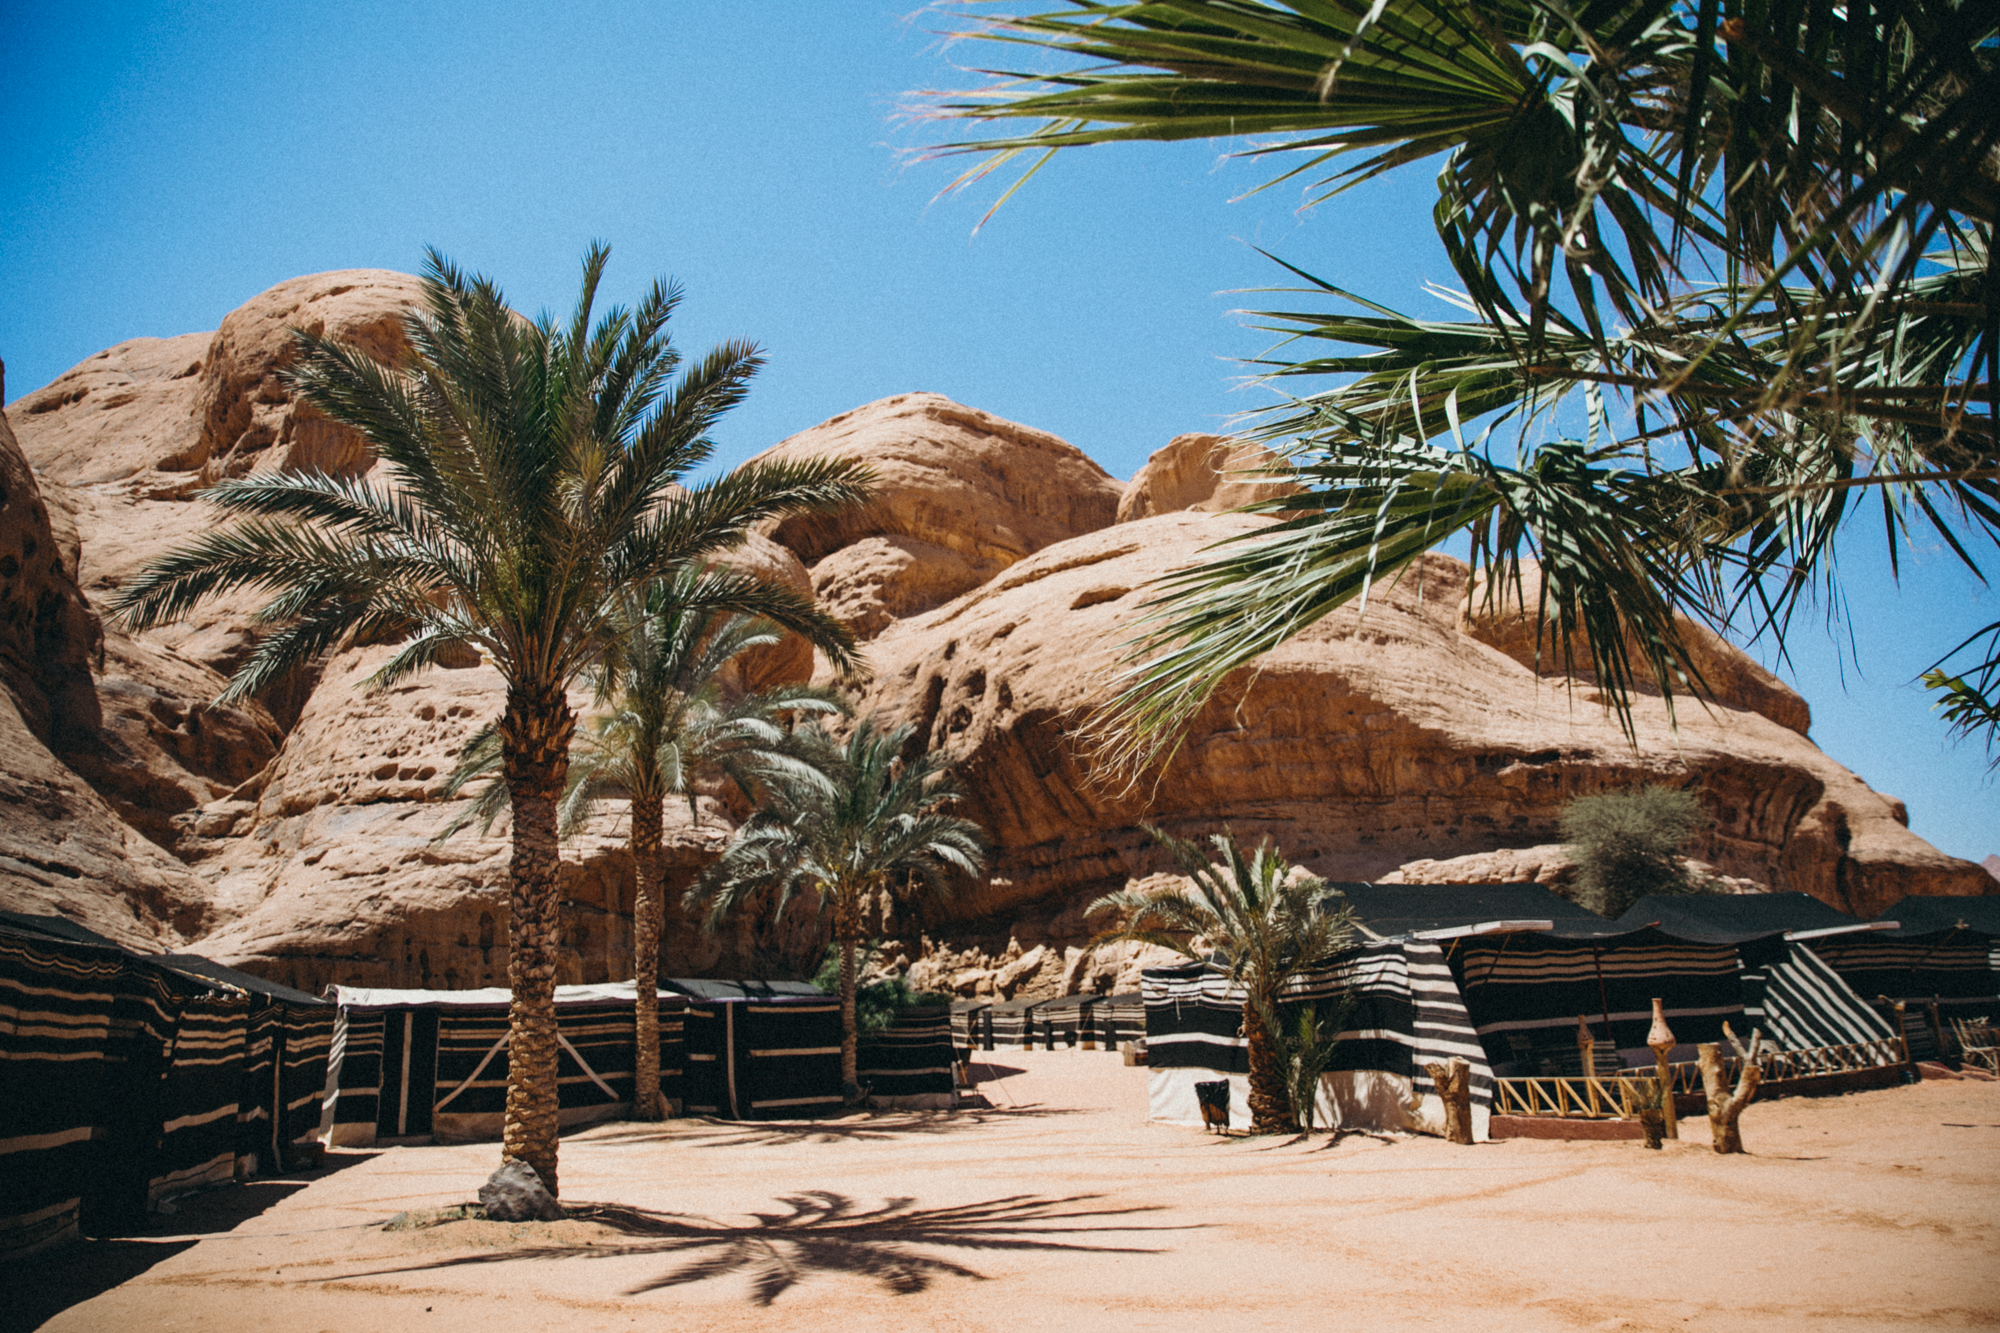 The next day we headed out to Wadi Rum which is the RADDEST place ever. Miles of sand dunes, tent dwellings, camels, massive cliffs, and palm trees.